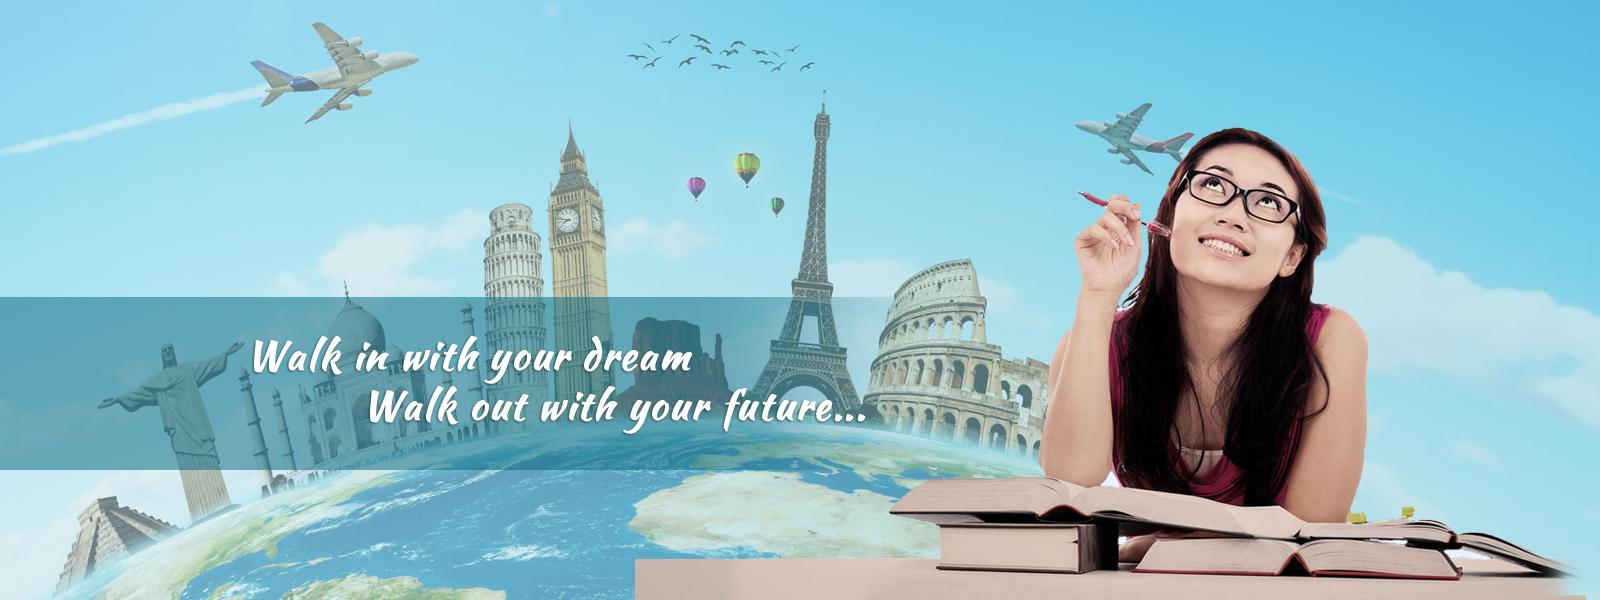 Overseas Education Mbbs Amp Study Abroad Consultants Ielts Pte Toefl Gre Gmat Sat Coaching